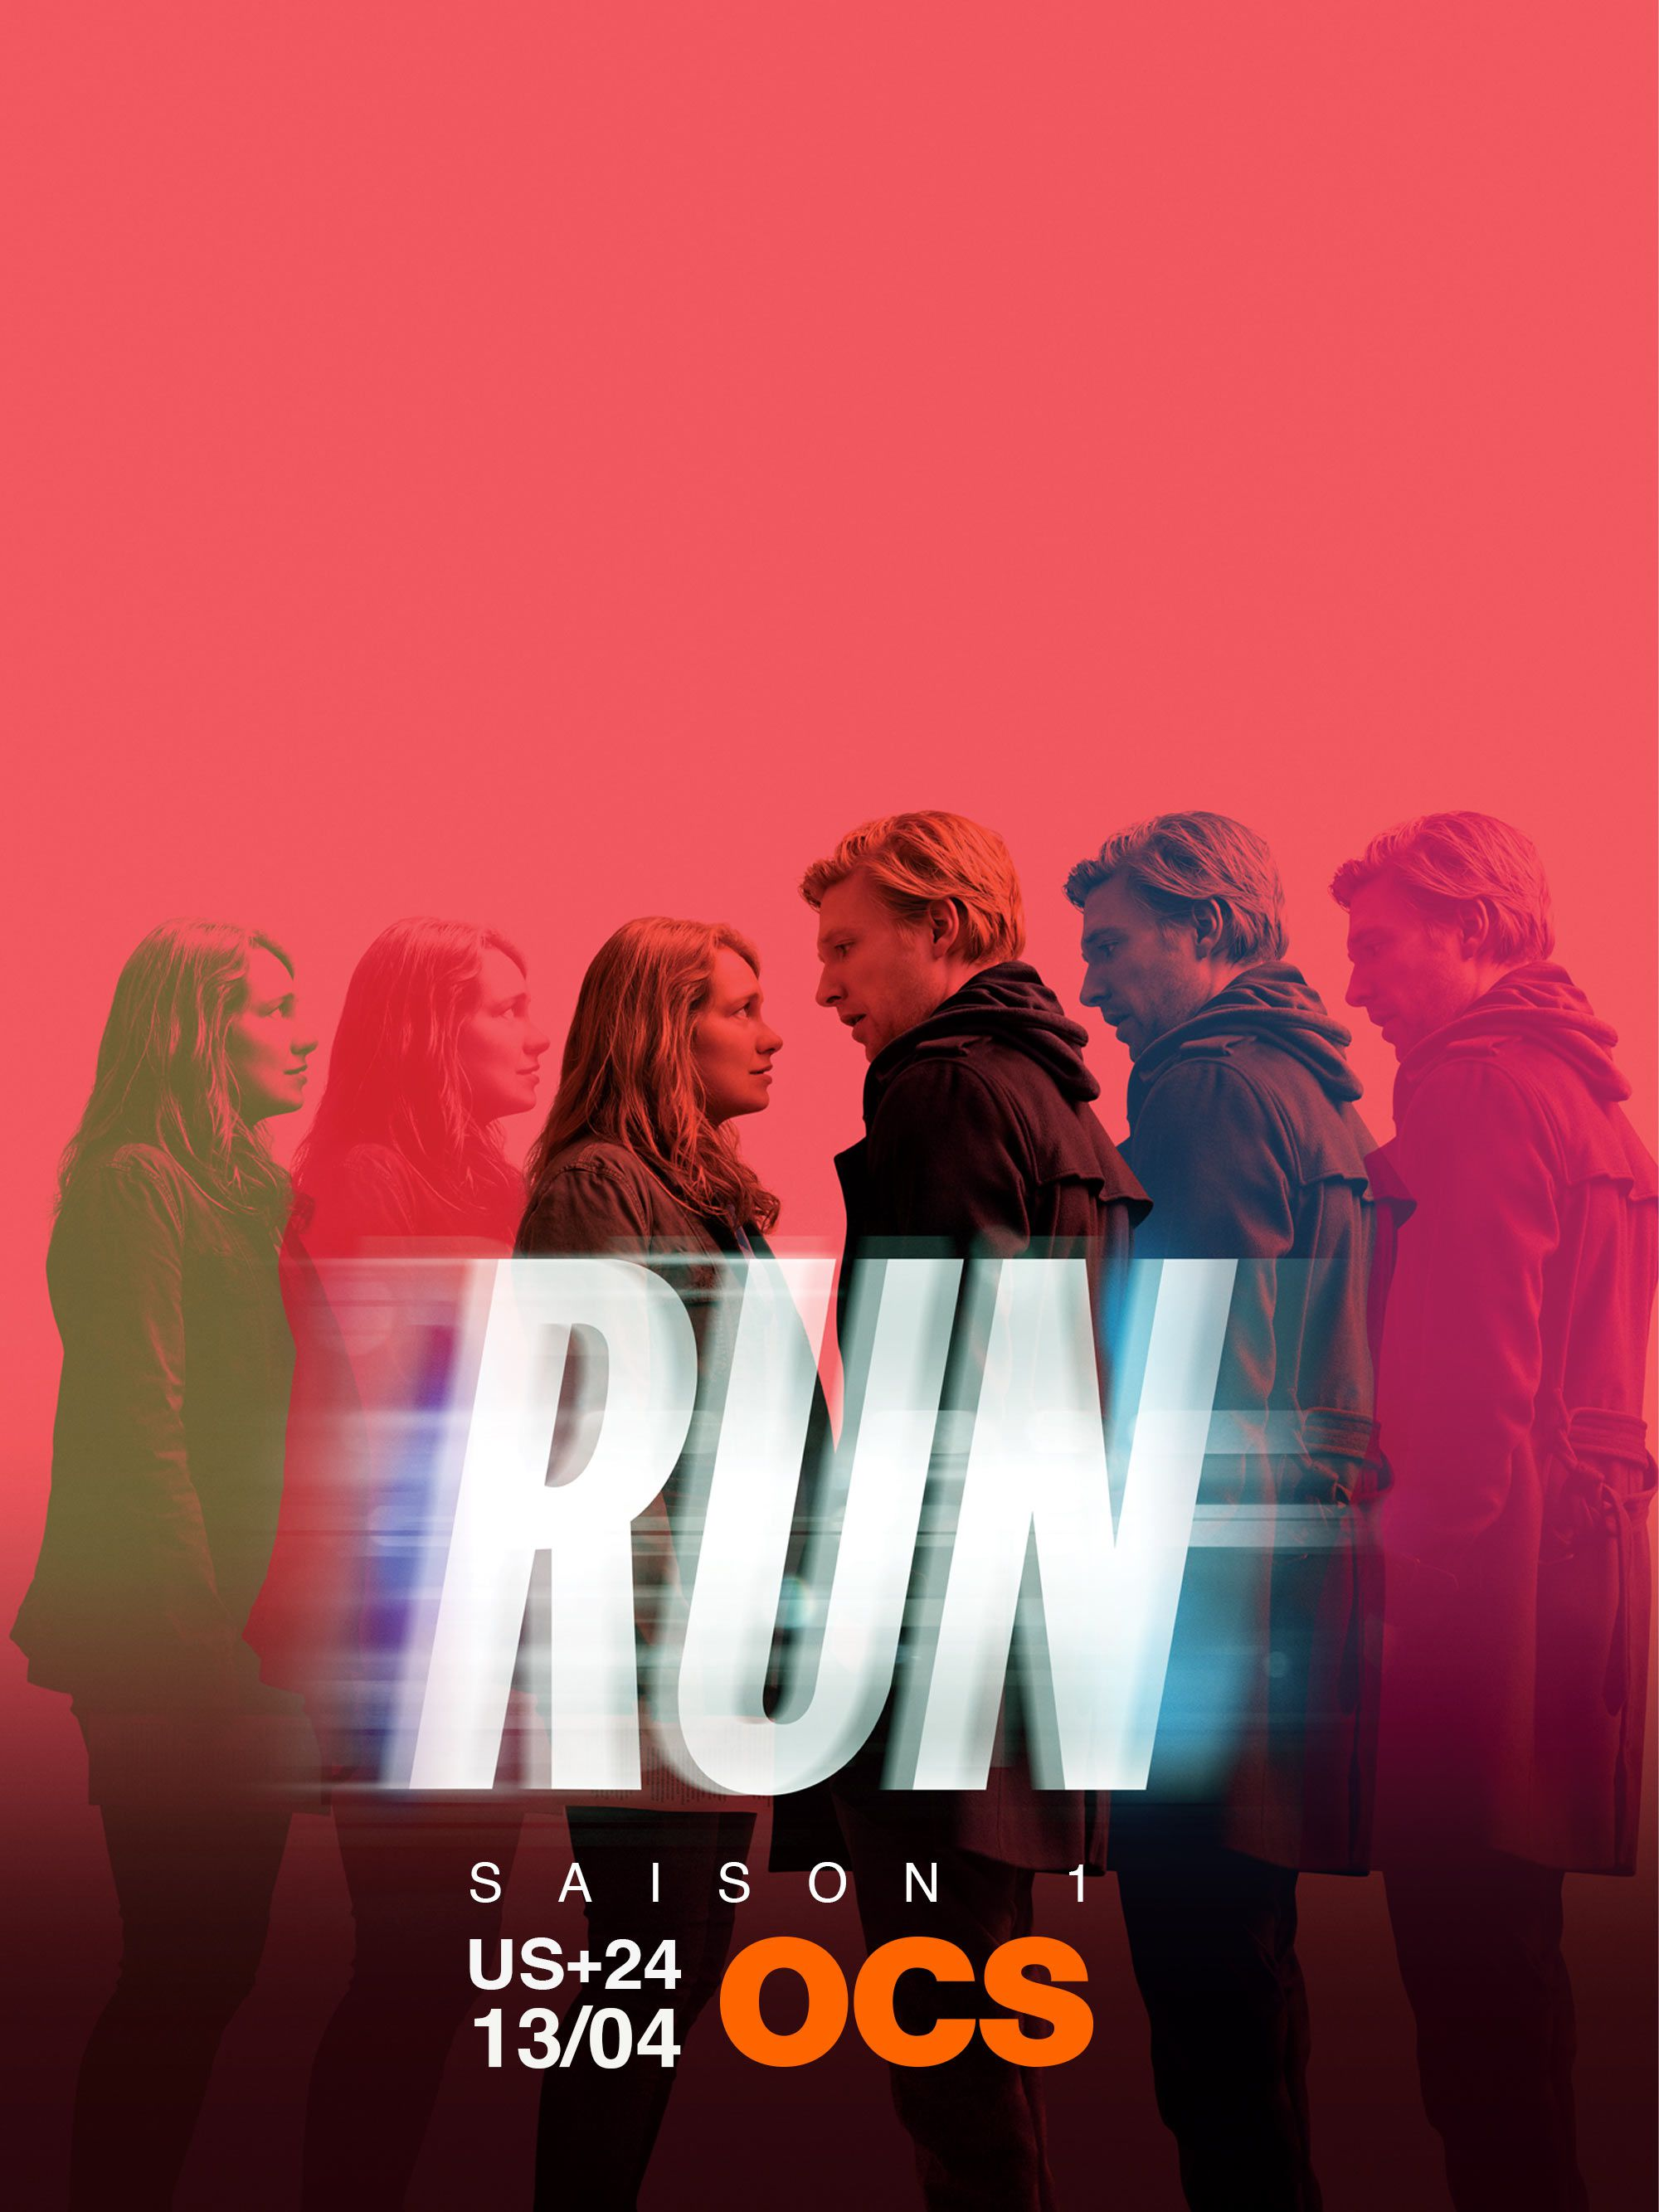 Run - Série (2020) streaming VF gratuit complet